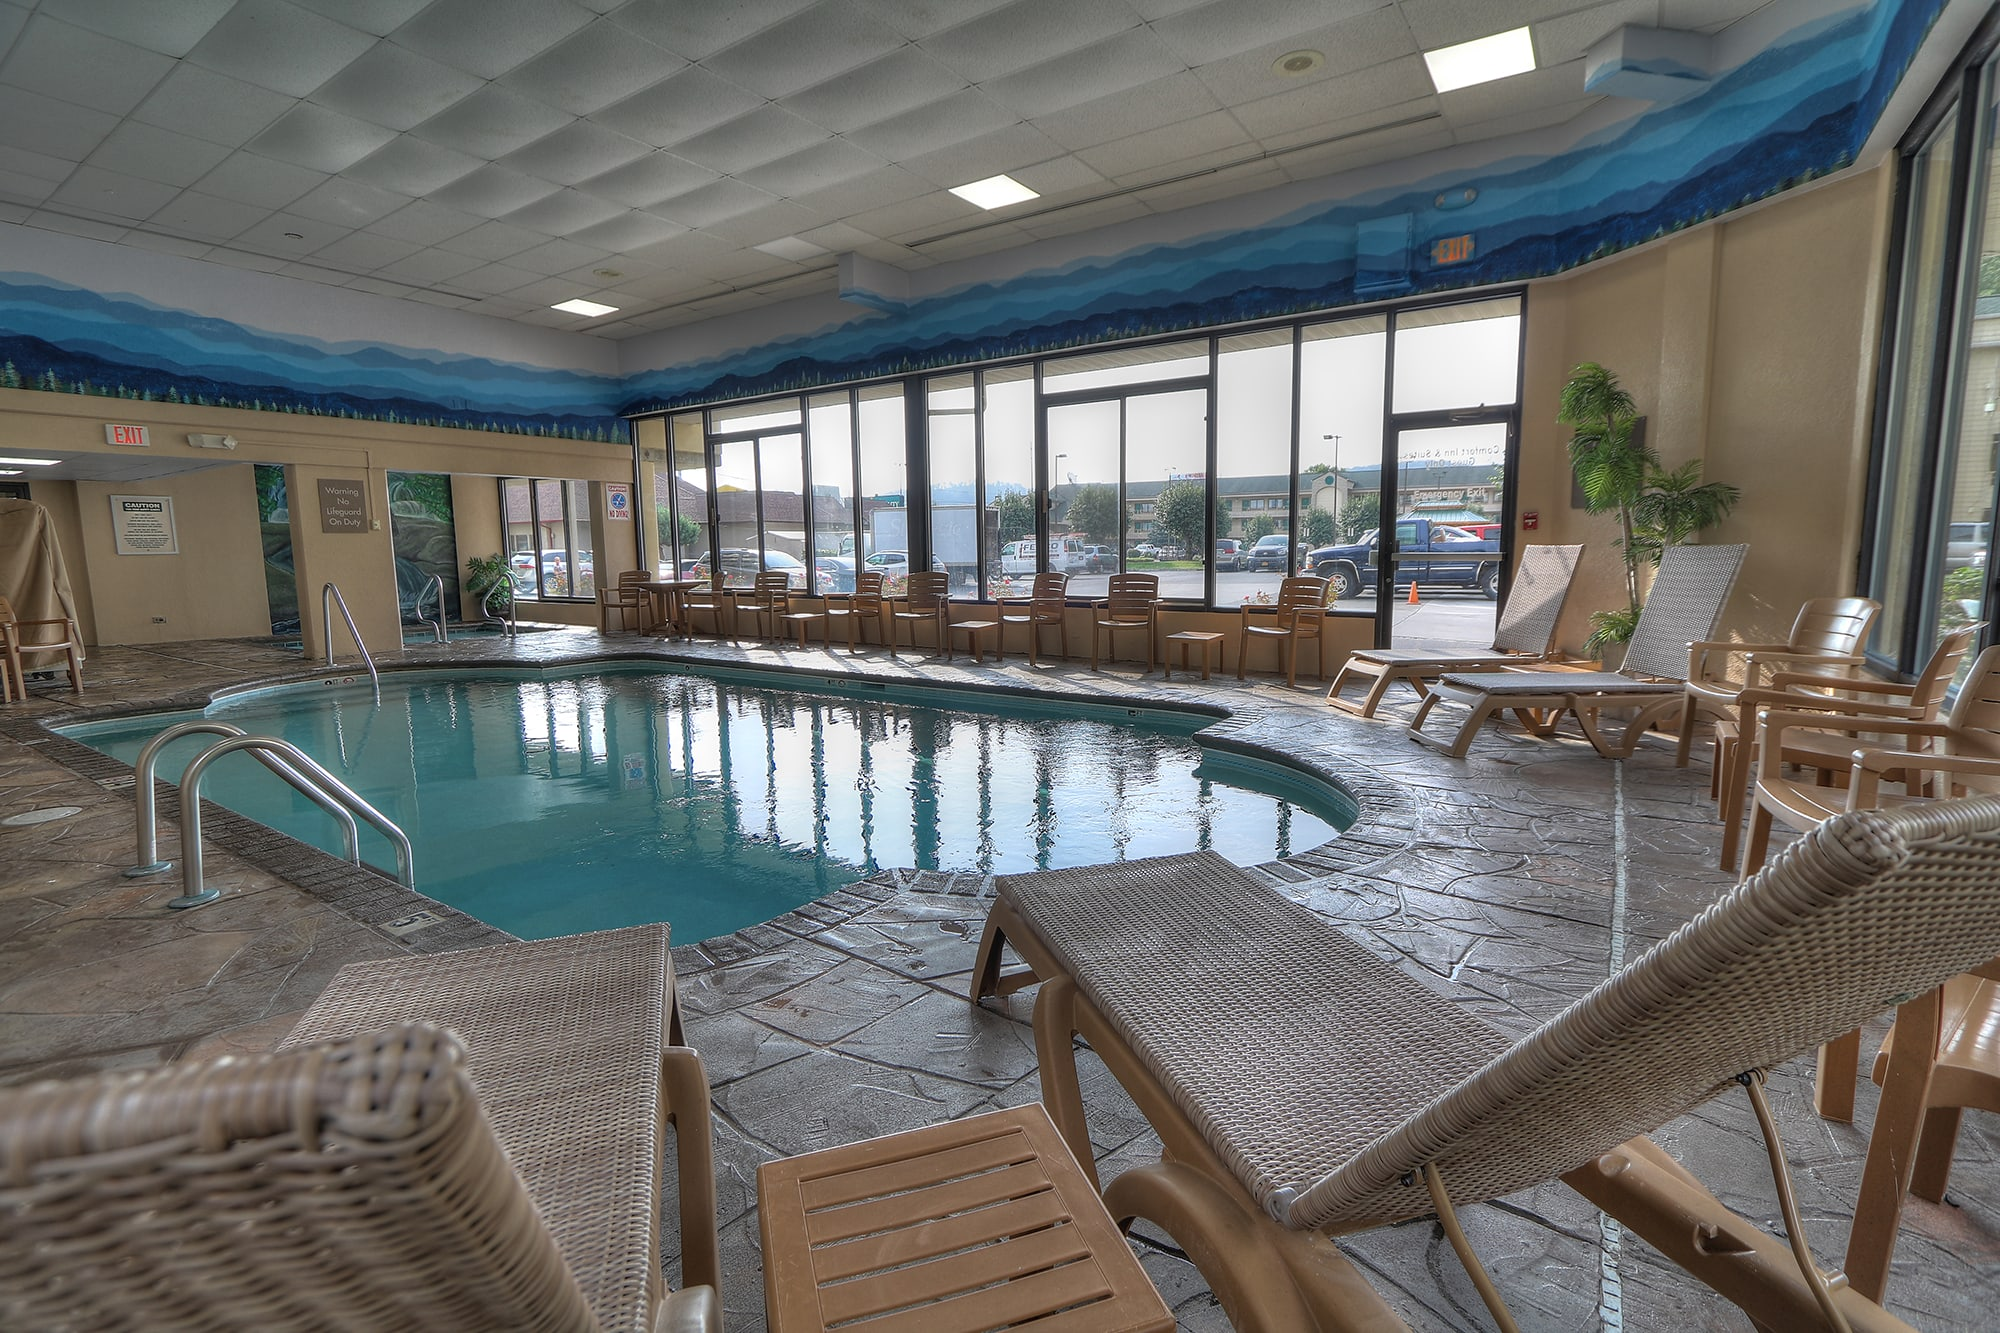 cipf-indoor-pool-4